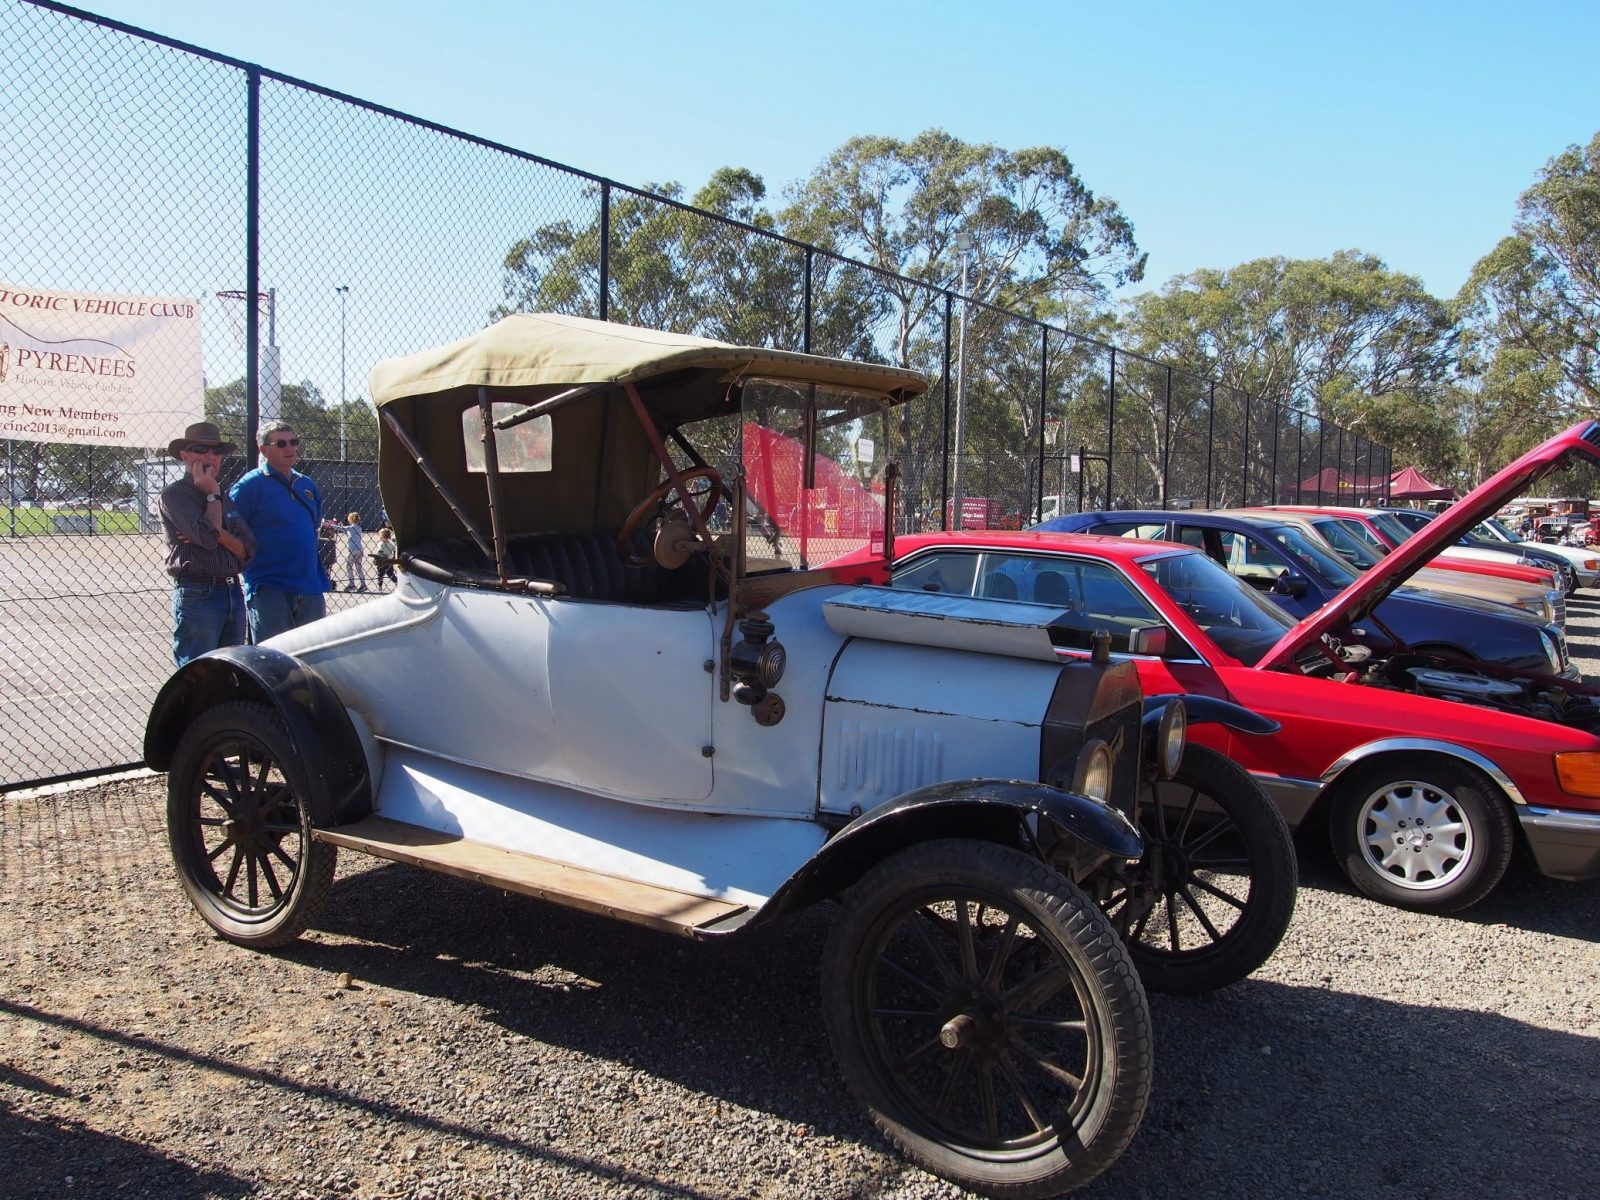 T Model Ford at the Natte Yallock Vehicle display